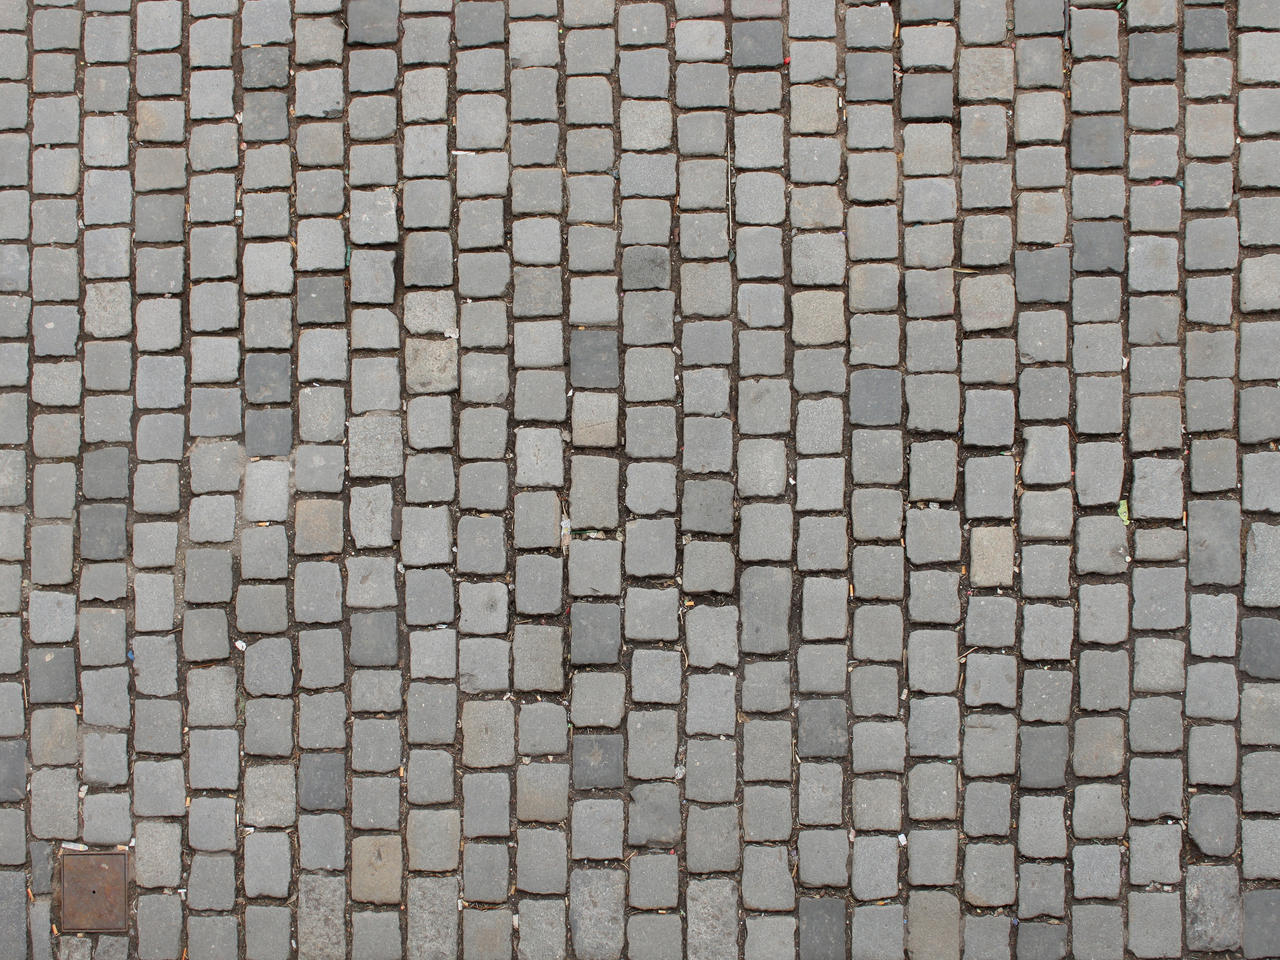 Floor Textures by AGF81 on DeviantArt